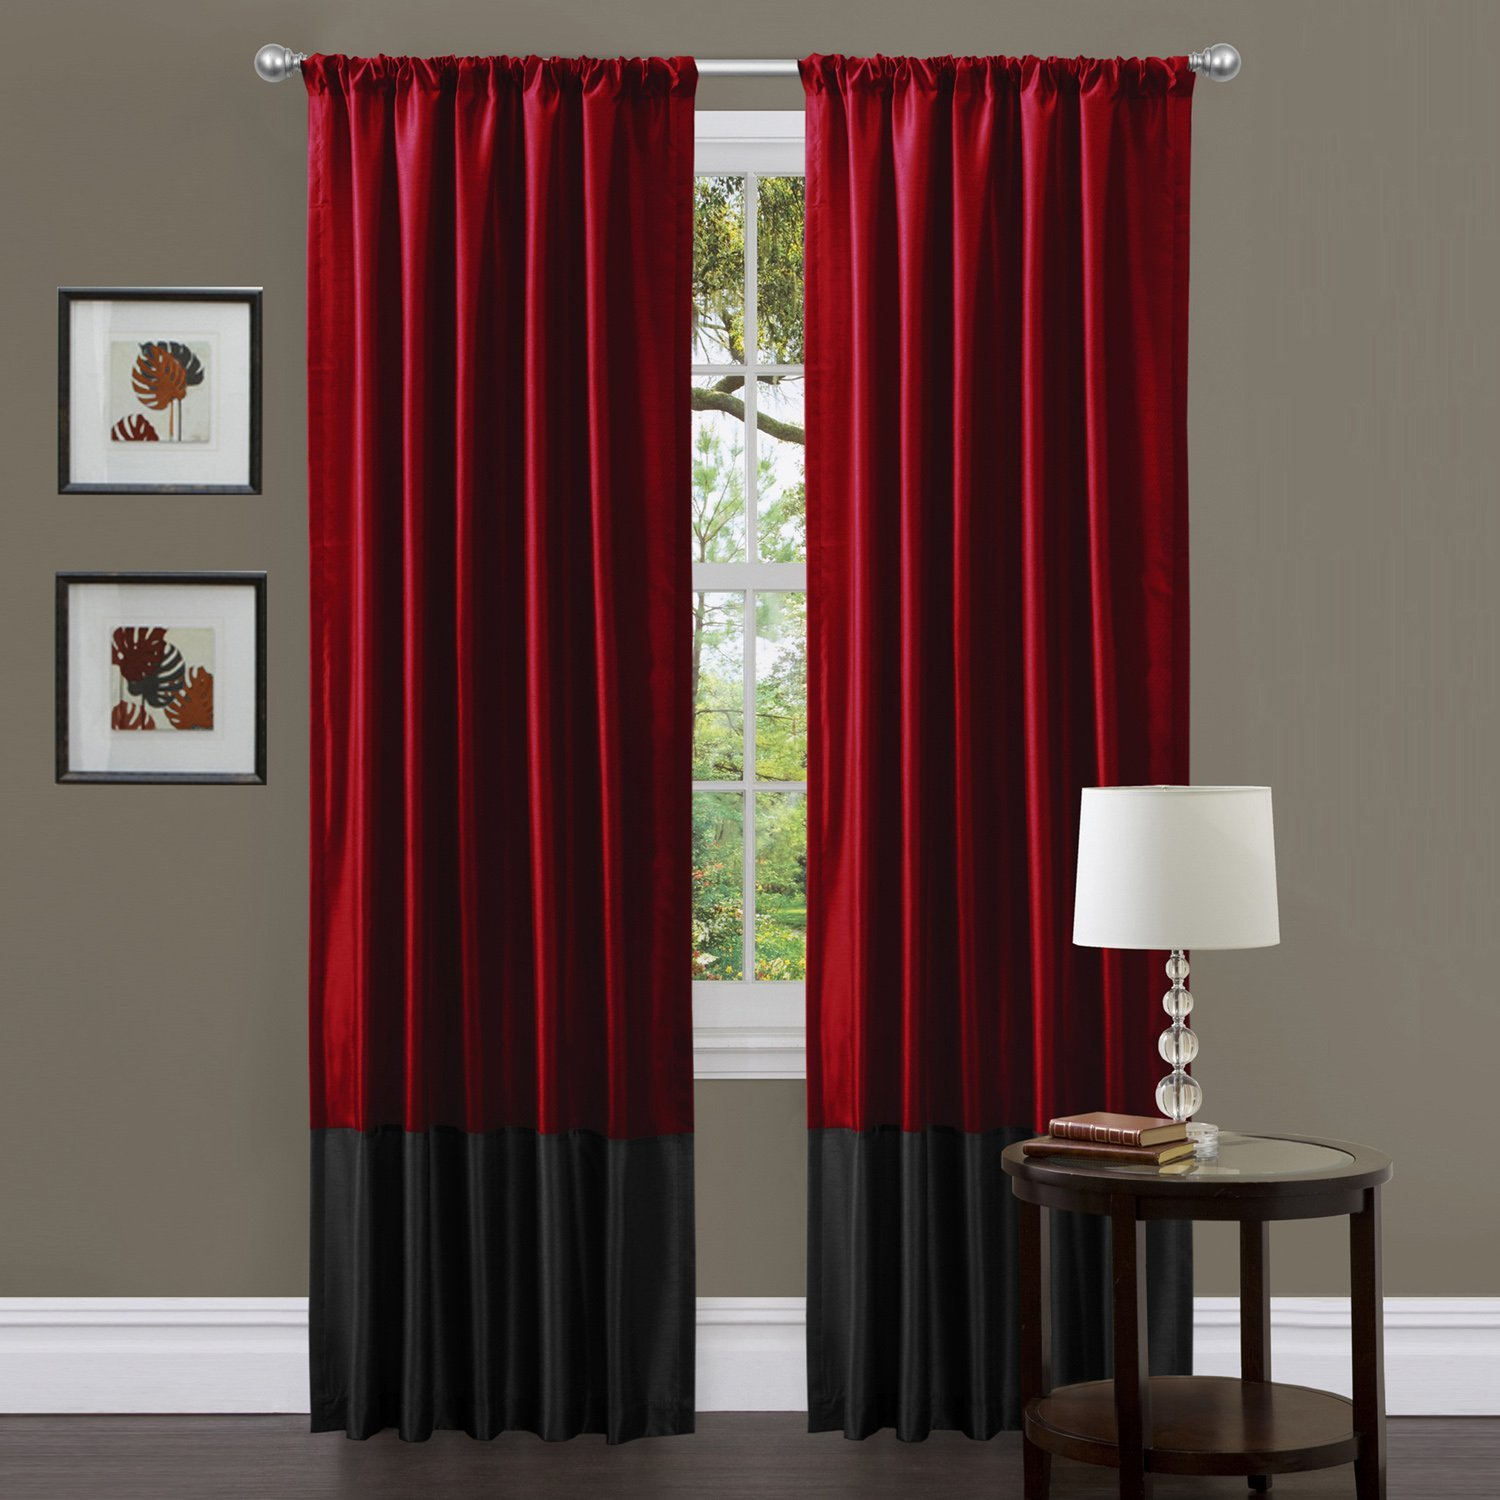 black and red curtains with black borders